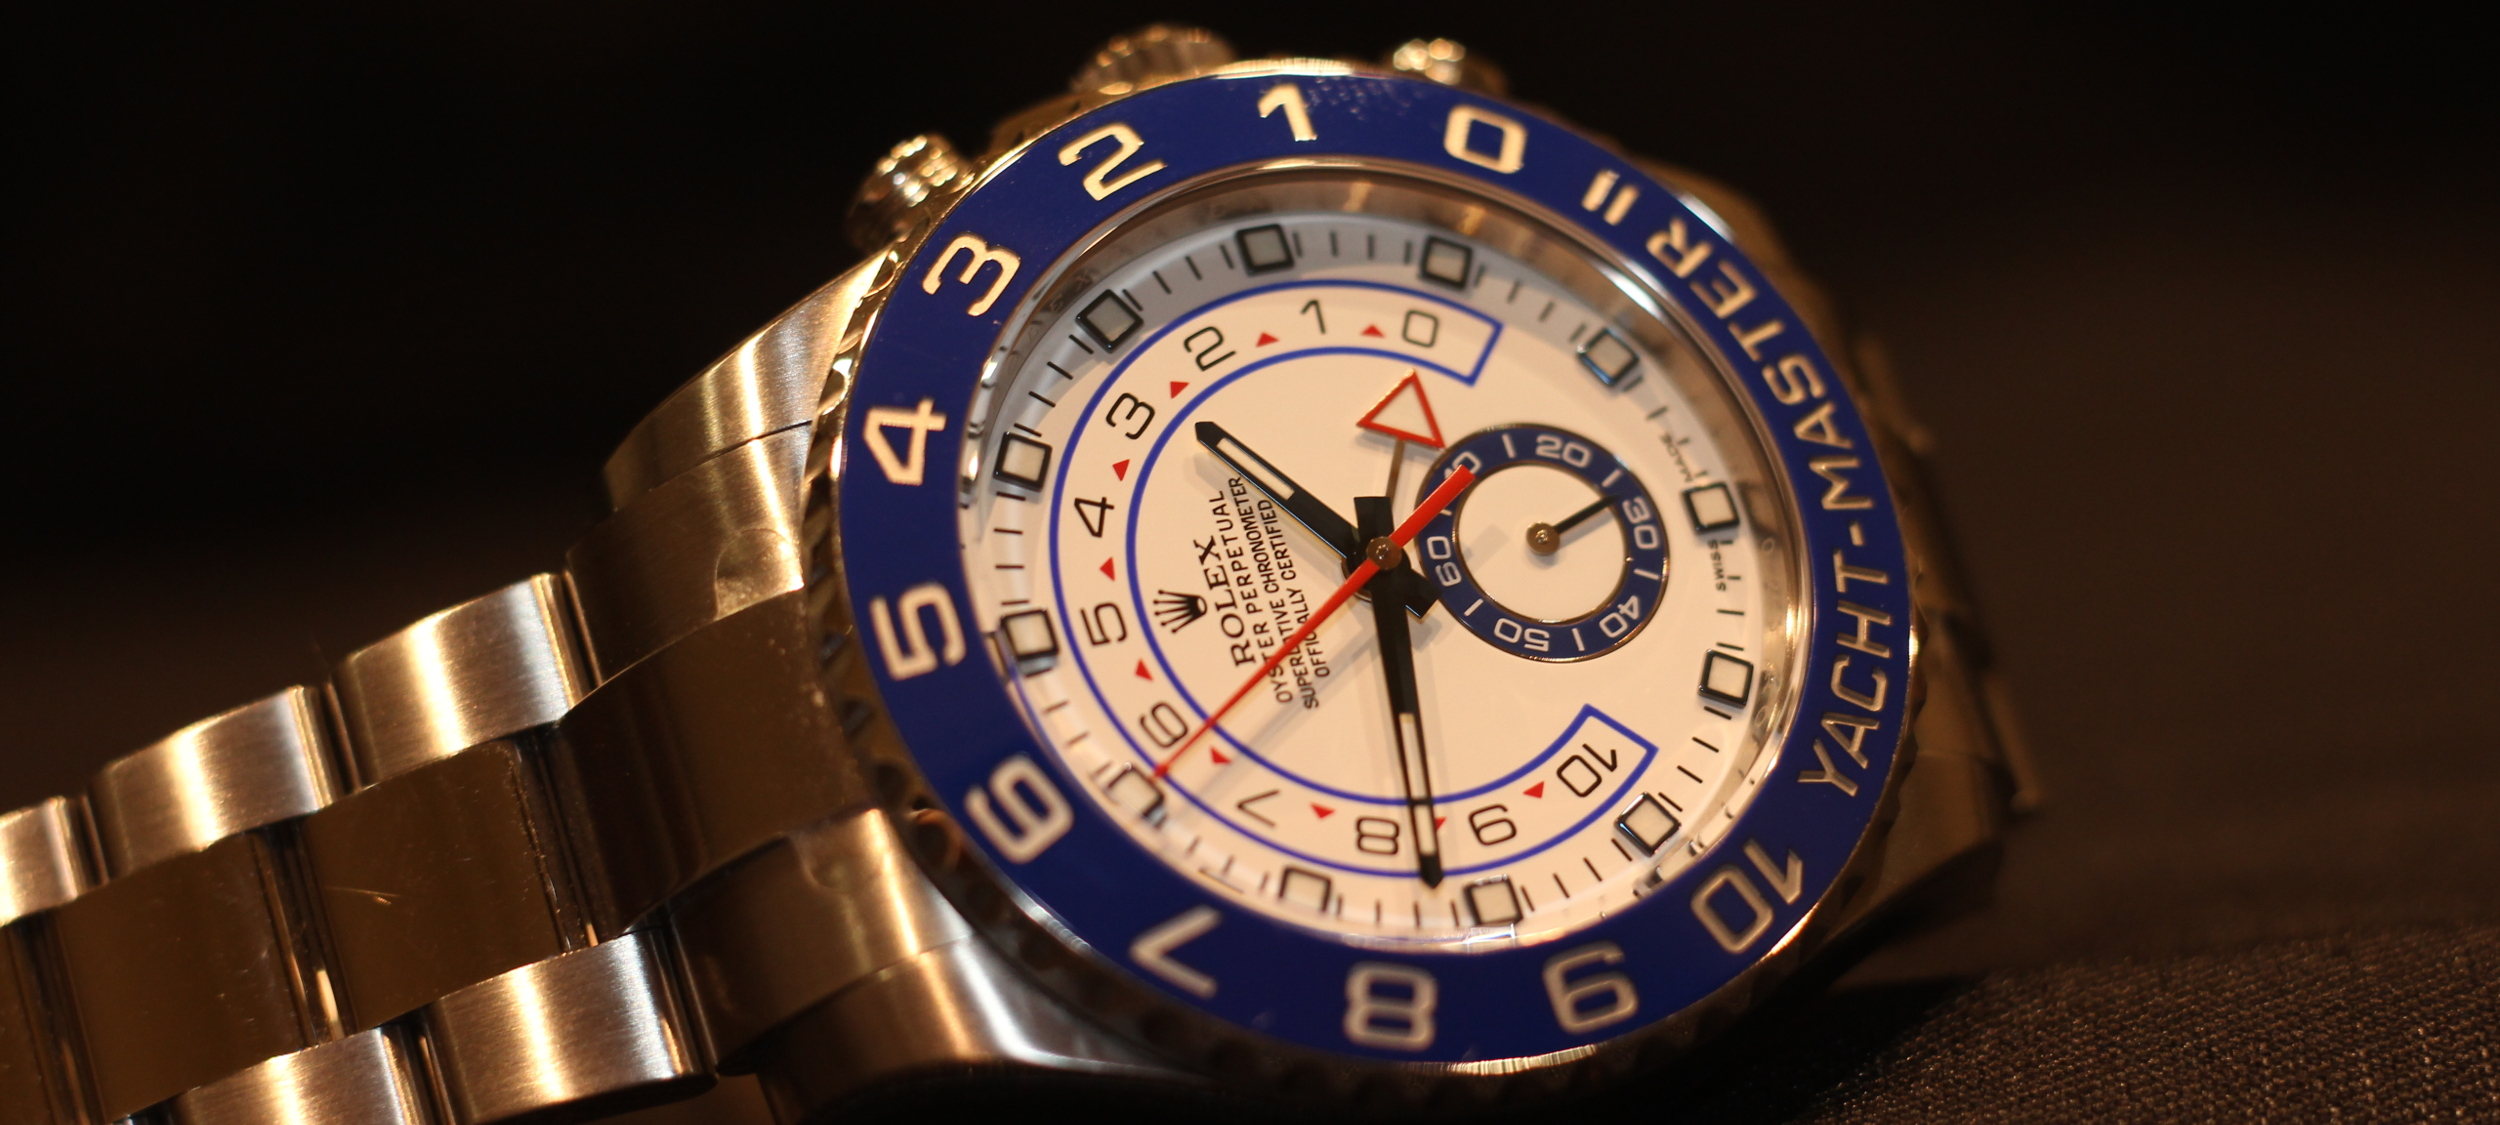 """My first """"A Moment in Time"""" articles were with watches photographed at a jeweler I briefly worked at. I hadn't worked for them for over five months when I wrote the articles but I still felt it important to disclose my past employment."""